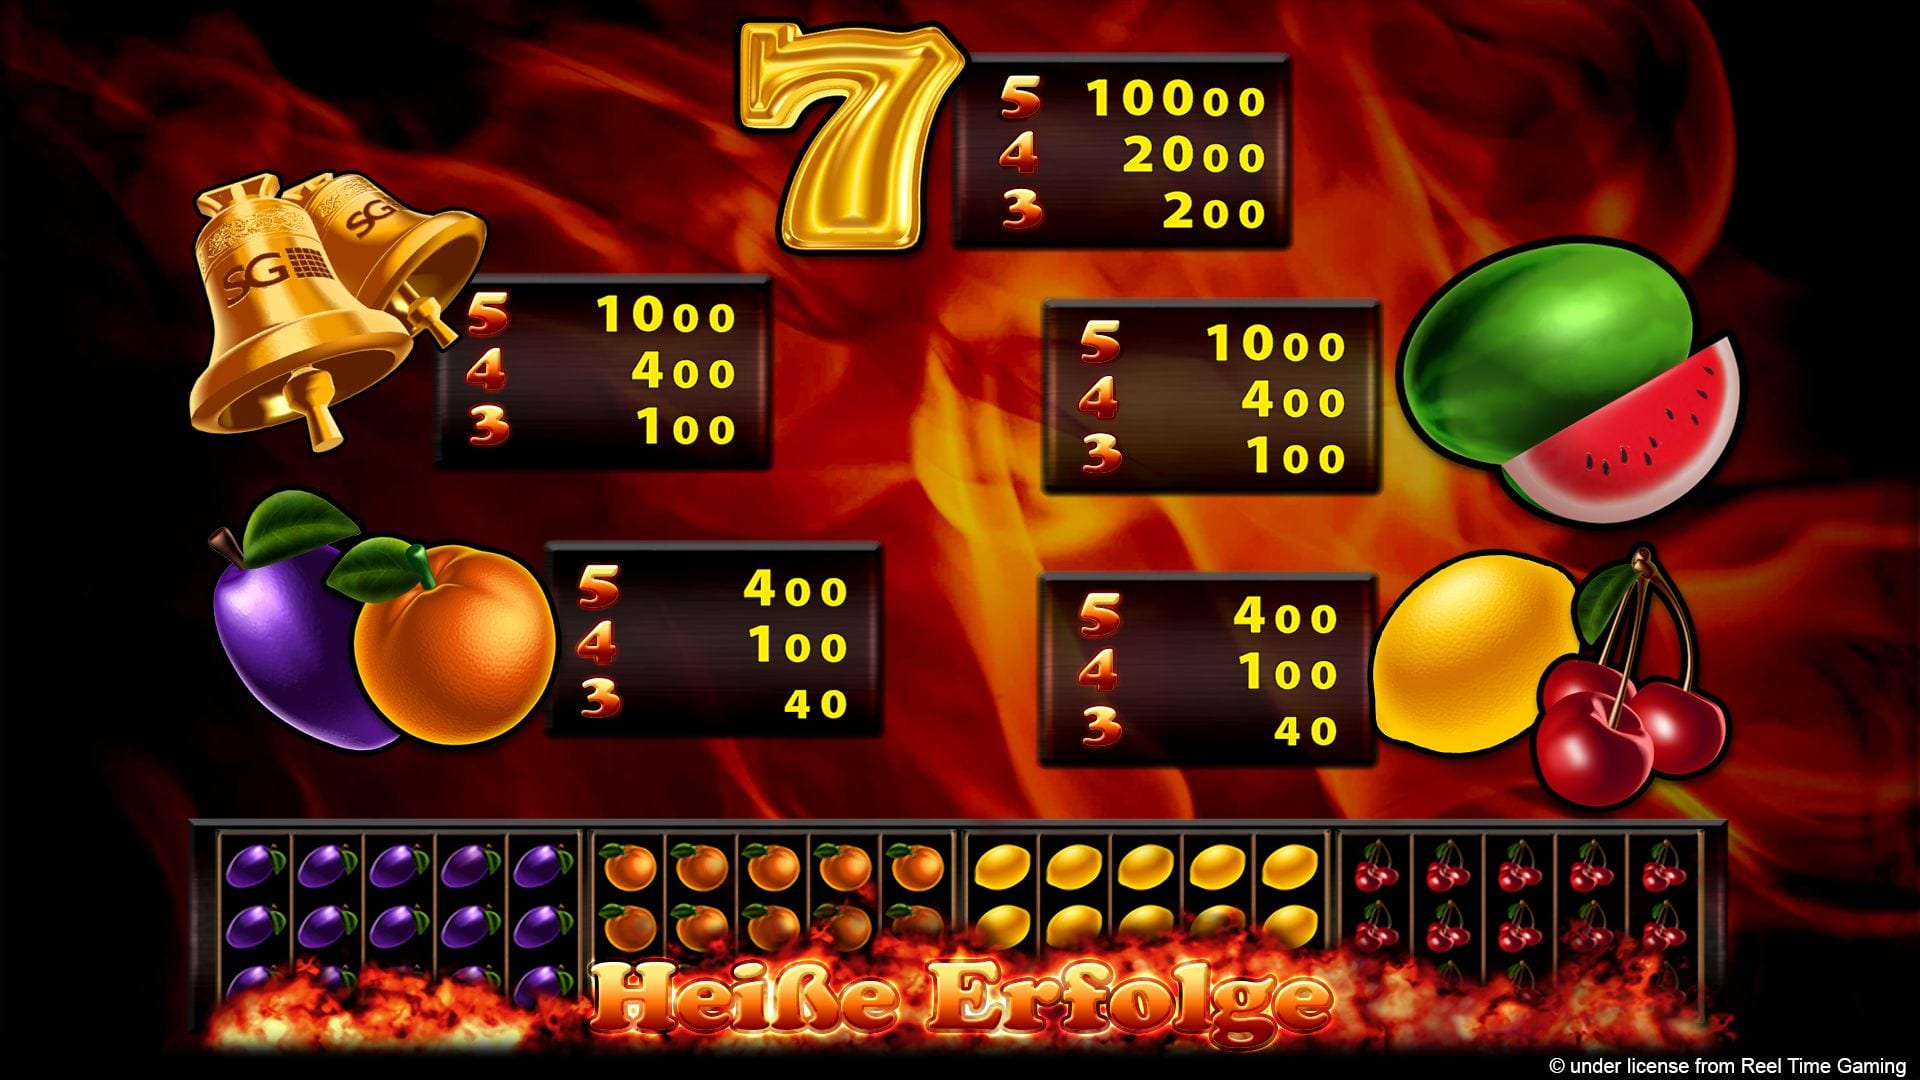 Hot Frootastic Free Slots